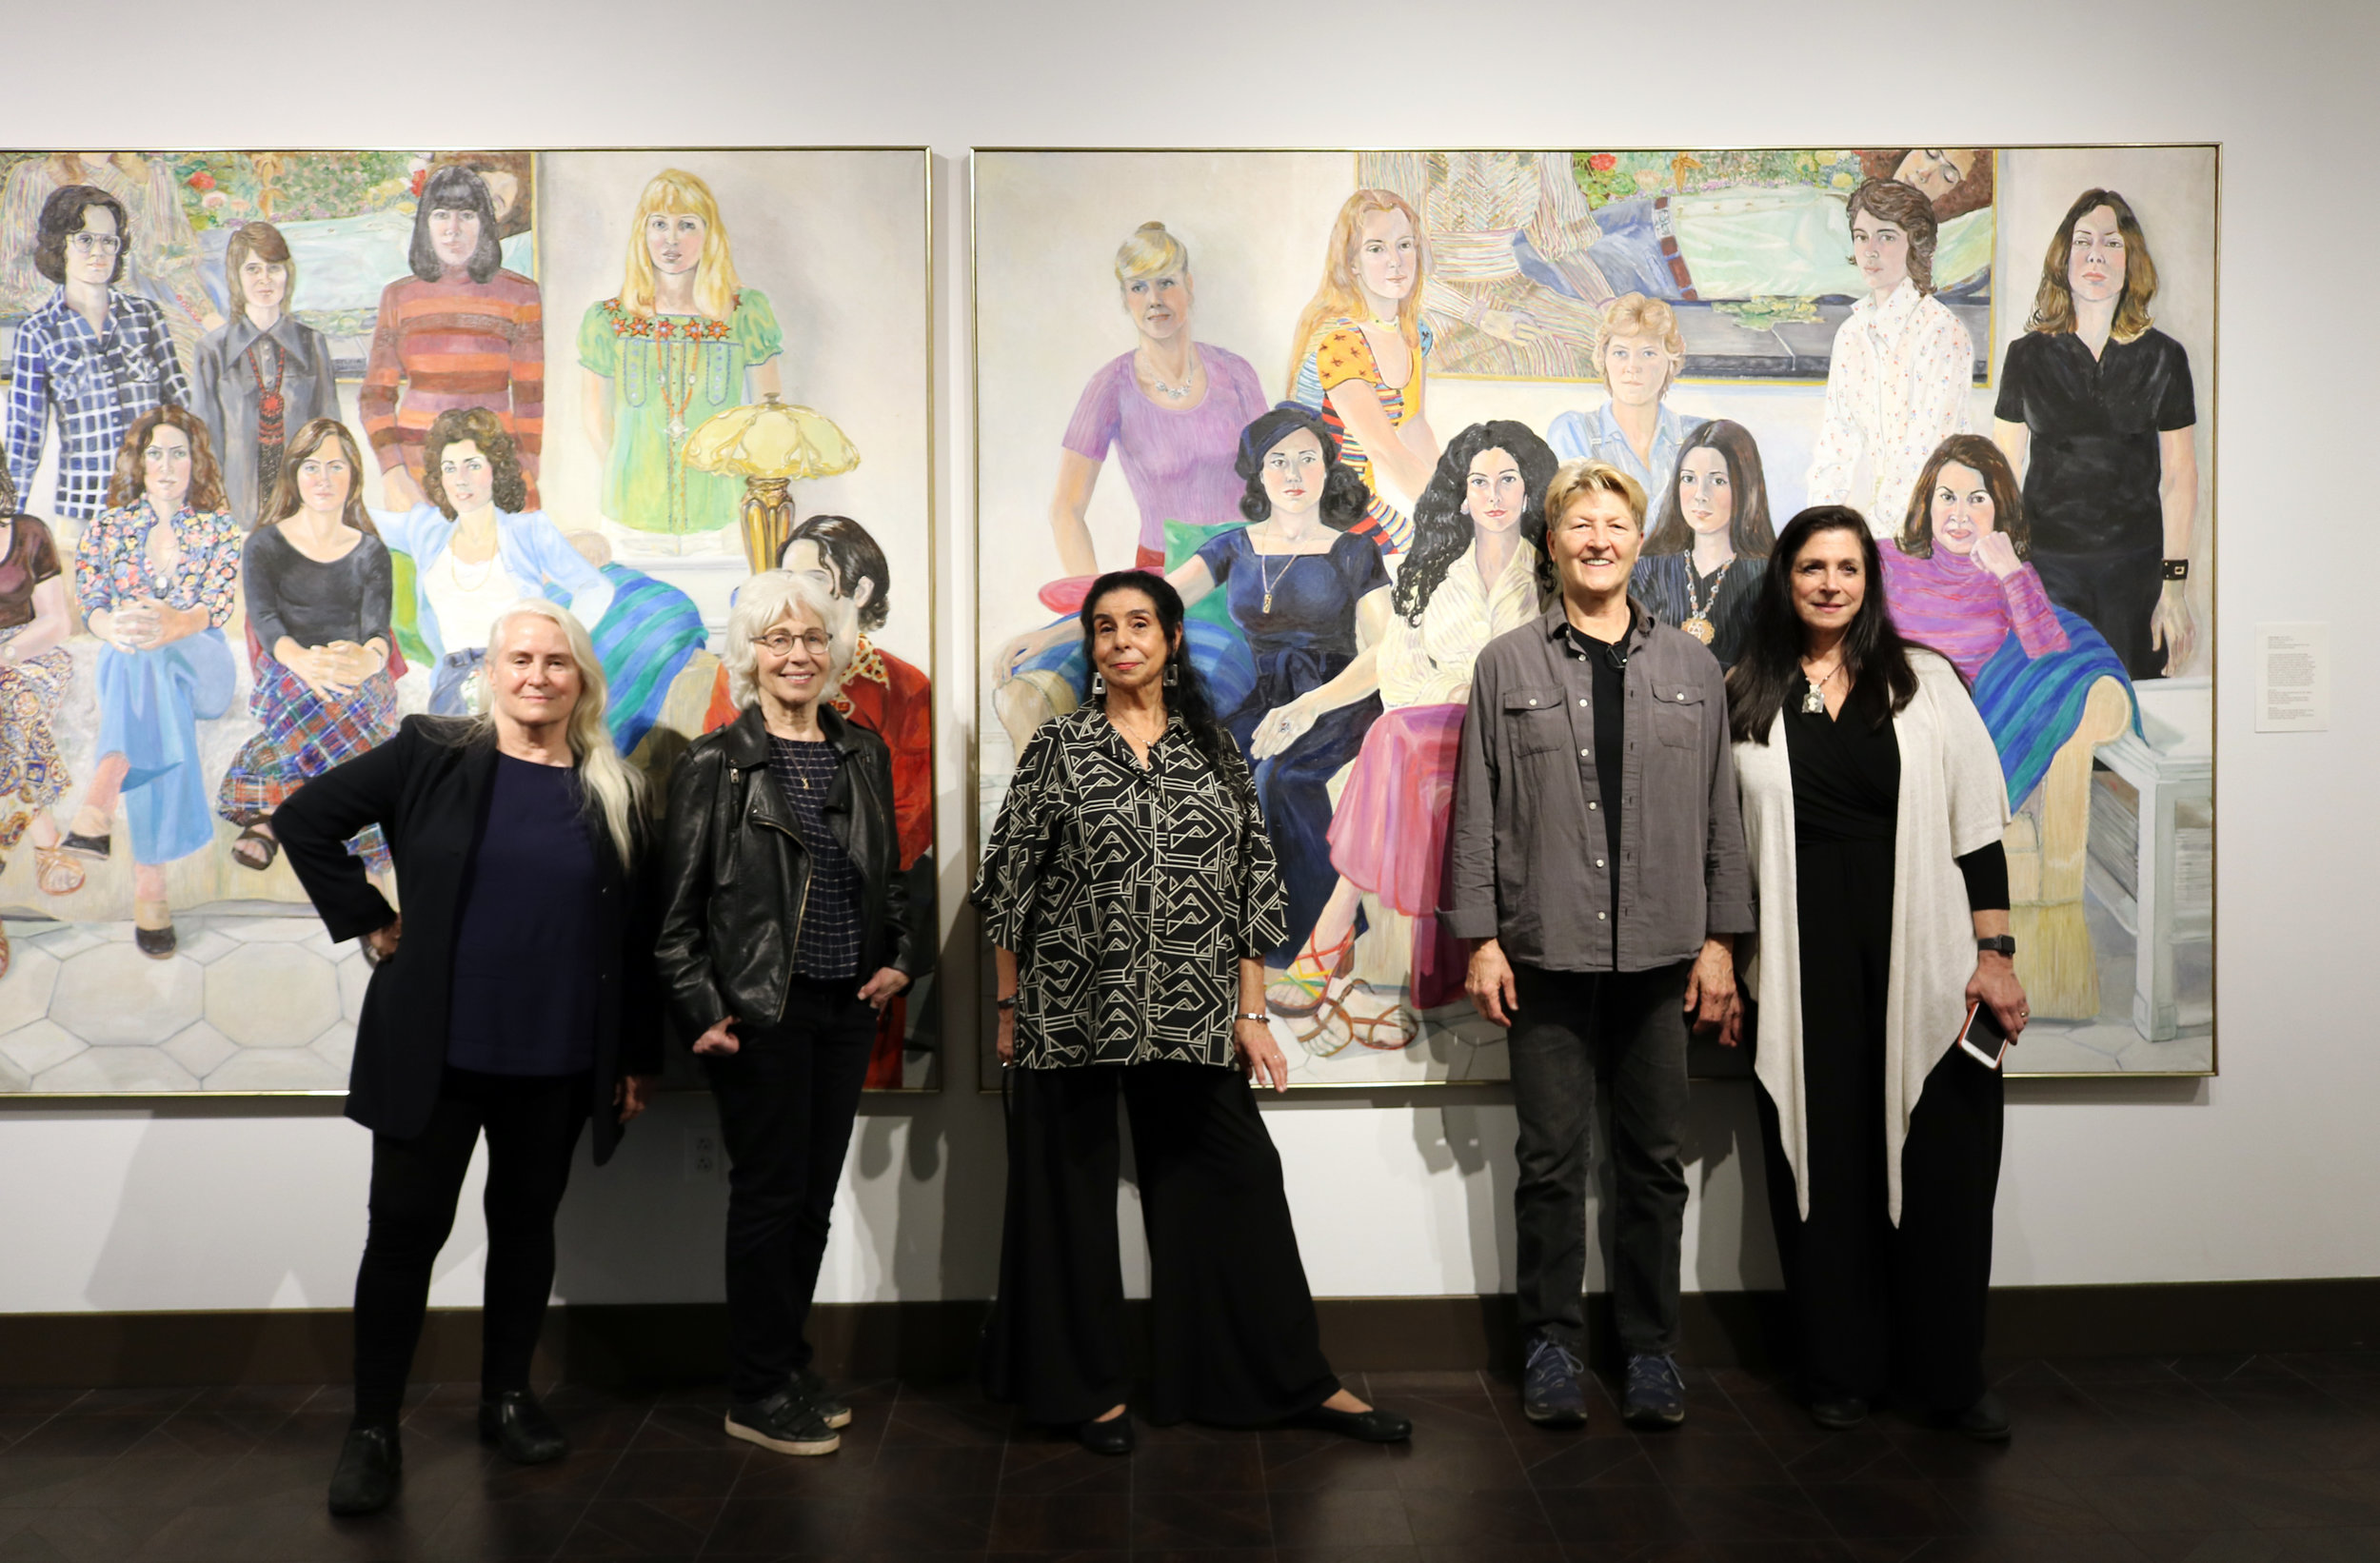 "Painting: Sylvia Sleigh (1916–2010), ""SOHO 20 Group Portrait,"" 1974, oil on two canvases. Collection of the University of Missouri–St. Louis, Gift of Robert and Lois Orchard.  Artists/others pictured in front of the painting: Sharon Wybrants, Elena Borstein, Cynthia Mailman, Marge Helenchild, and Rosalind Shaffer."